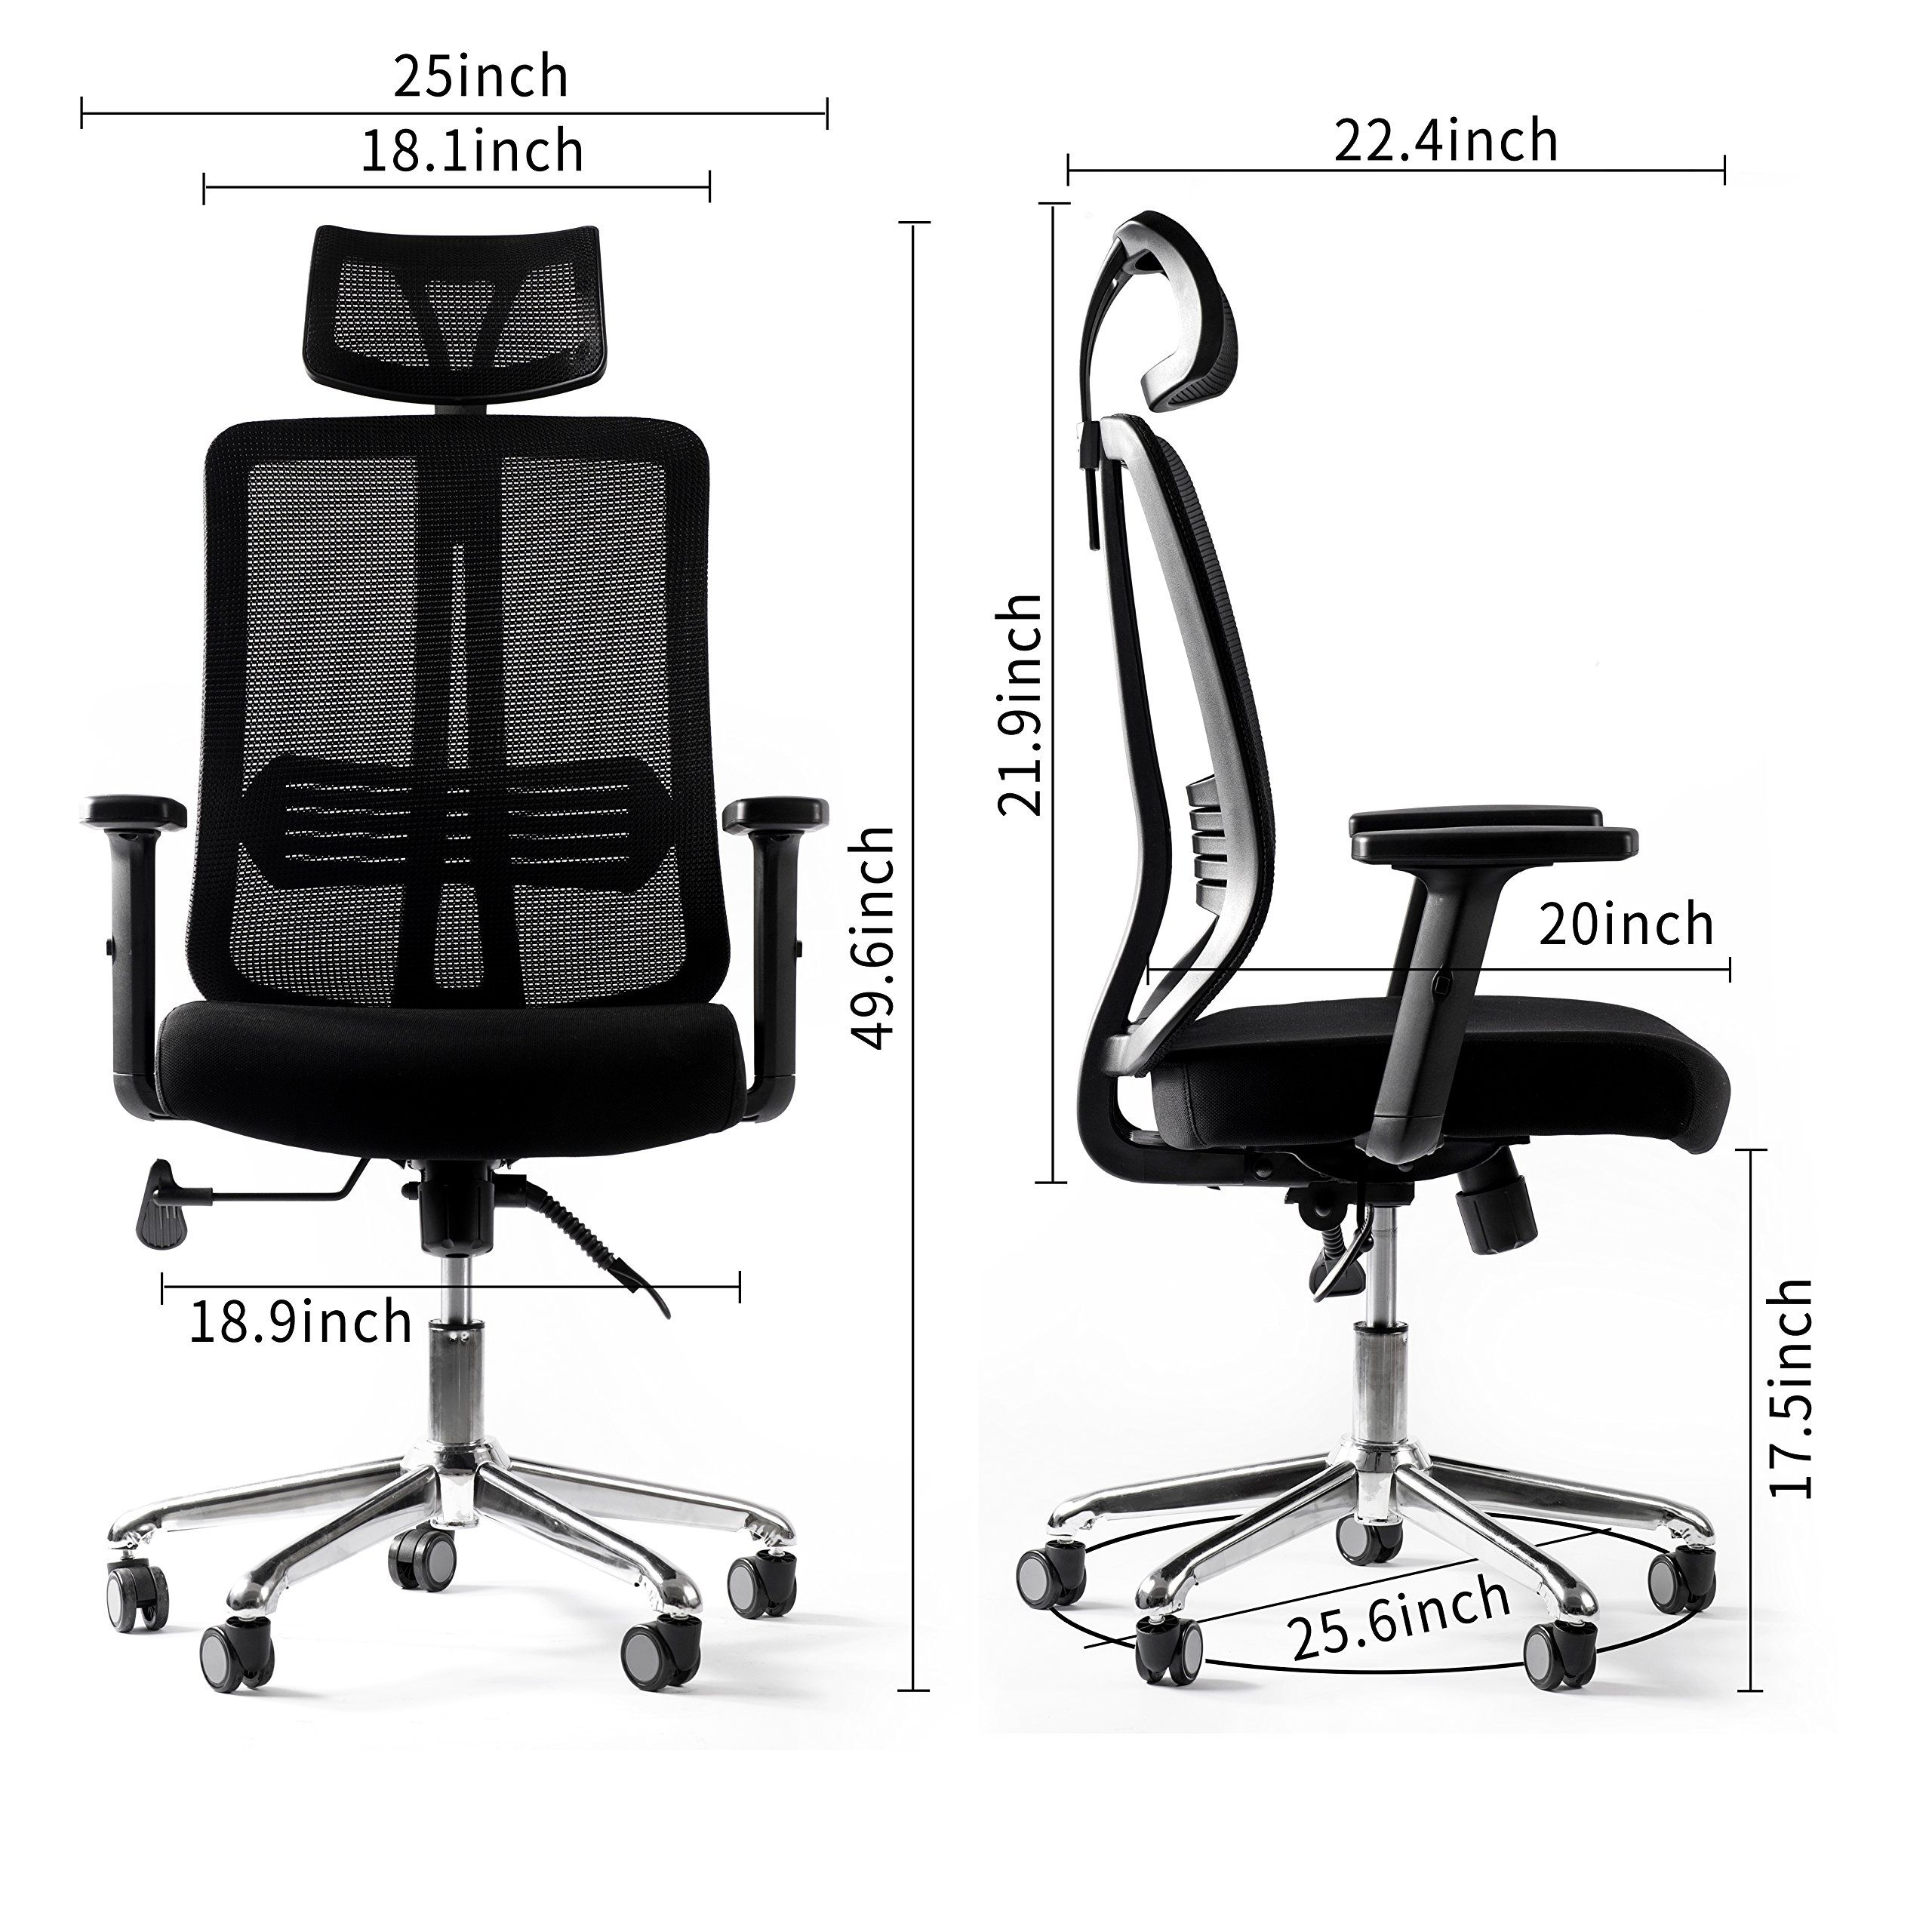 WINMI Modern High Back Ergonomic Office Chair Seat Height Swivel